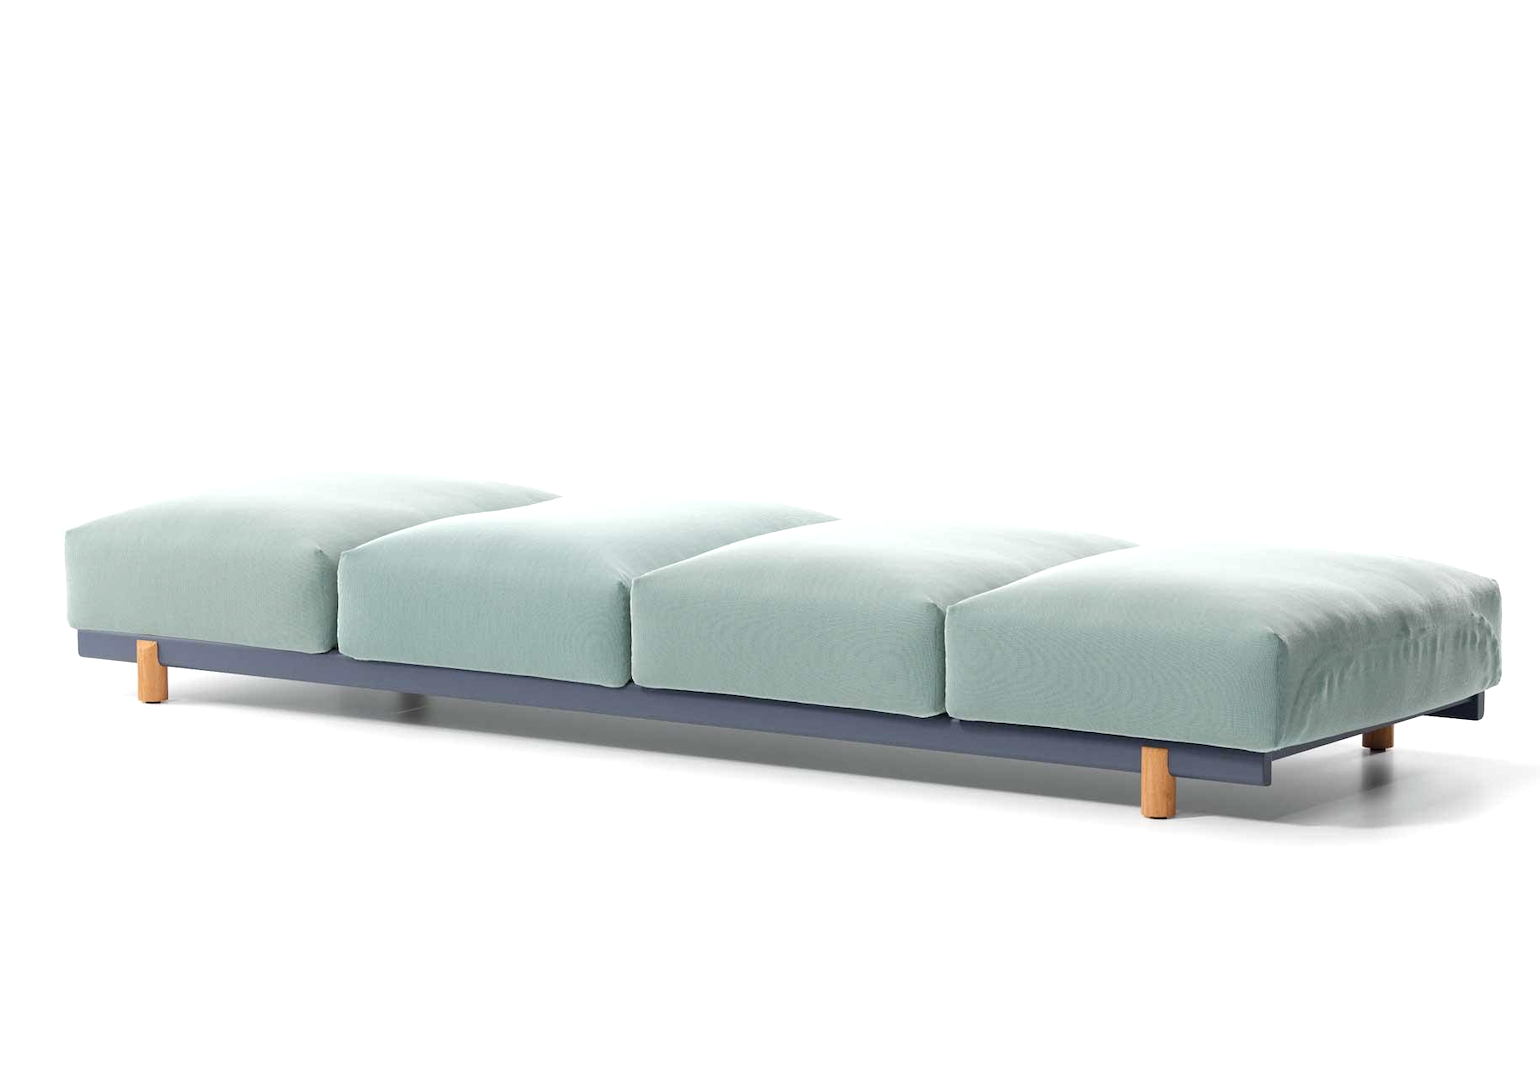 Product Image Molo Bench 4 Seat